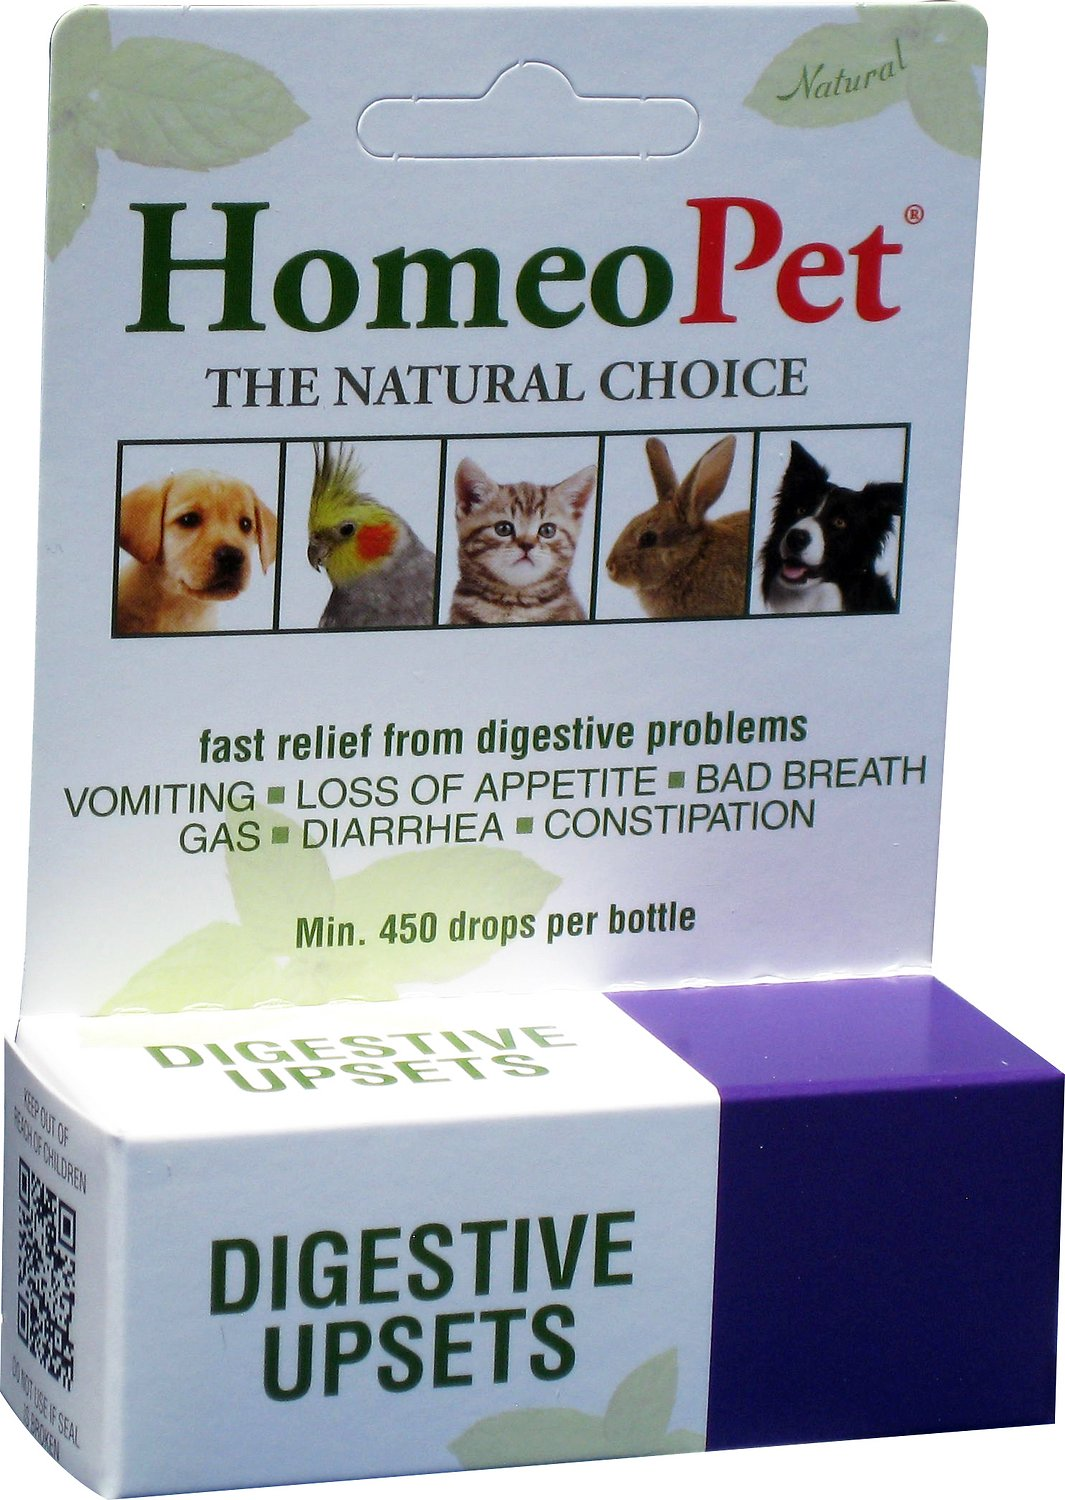 HomeoPet Digestive Upsets Dog, Cat, Bird & Small Animal Supplement, 450 drops